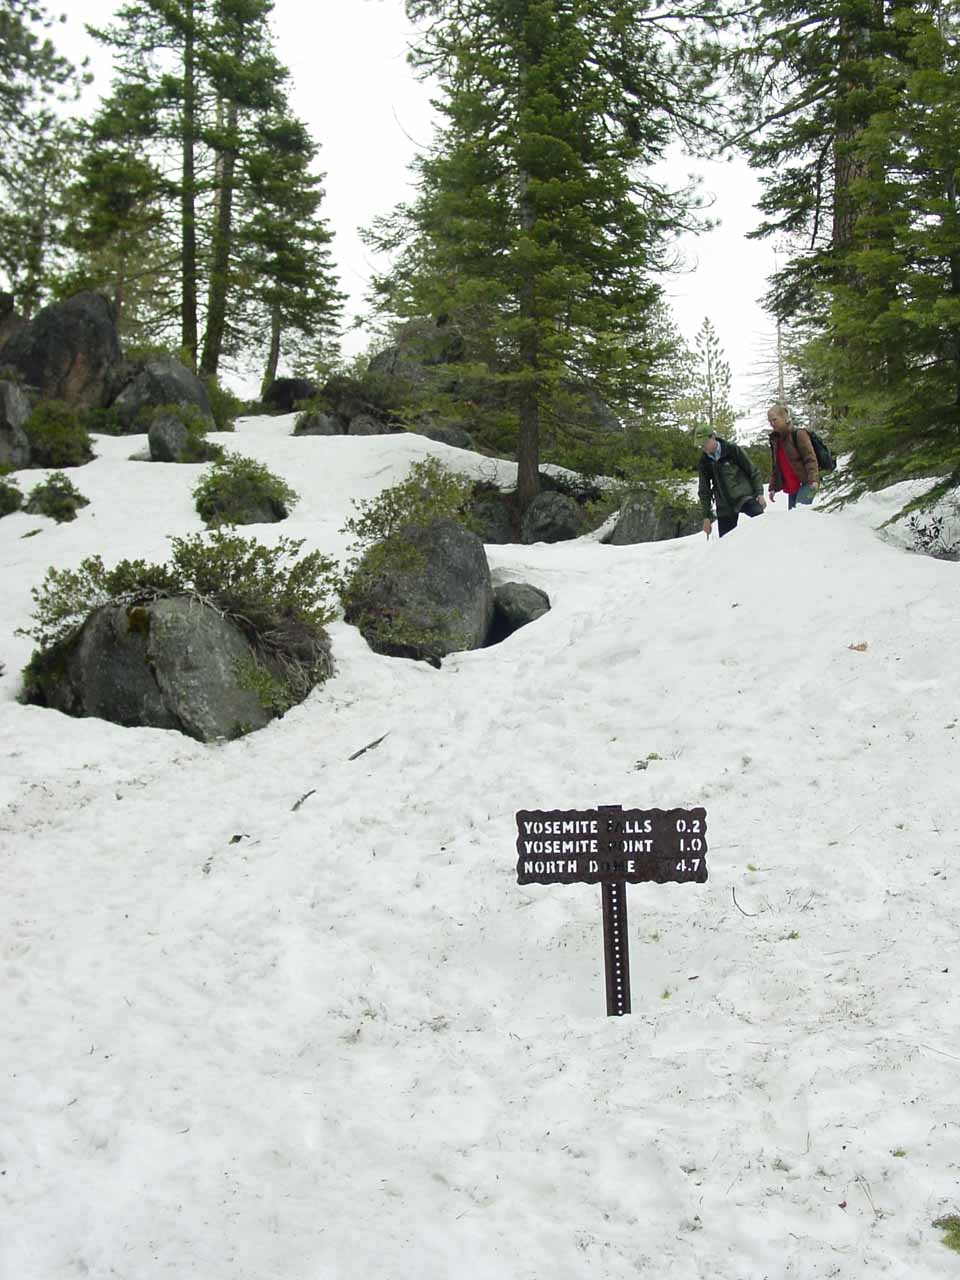 Following the signs to the top of Yosemite Falls